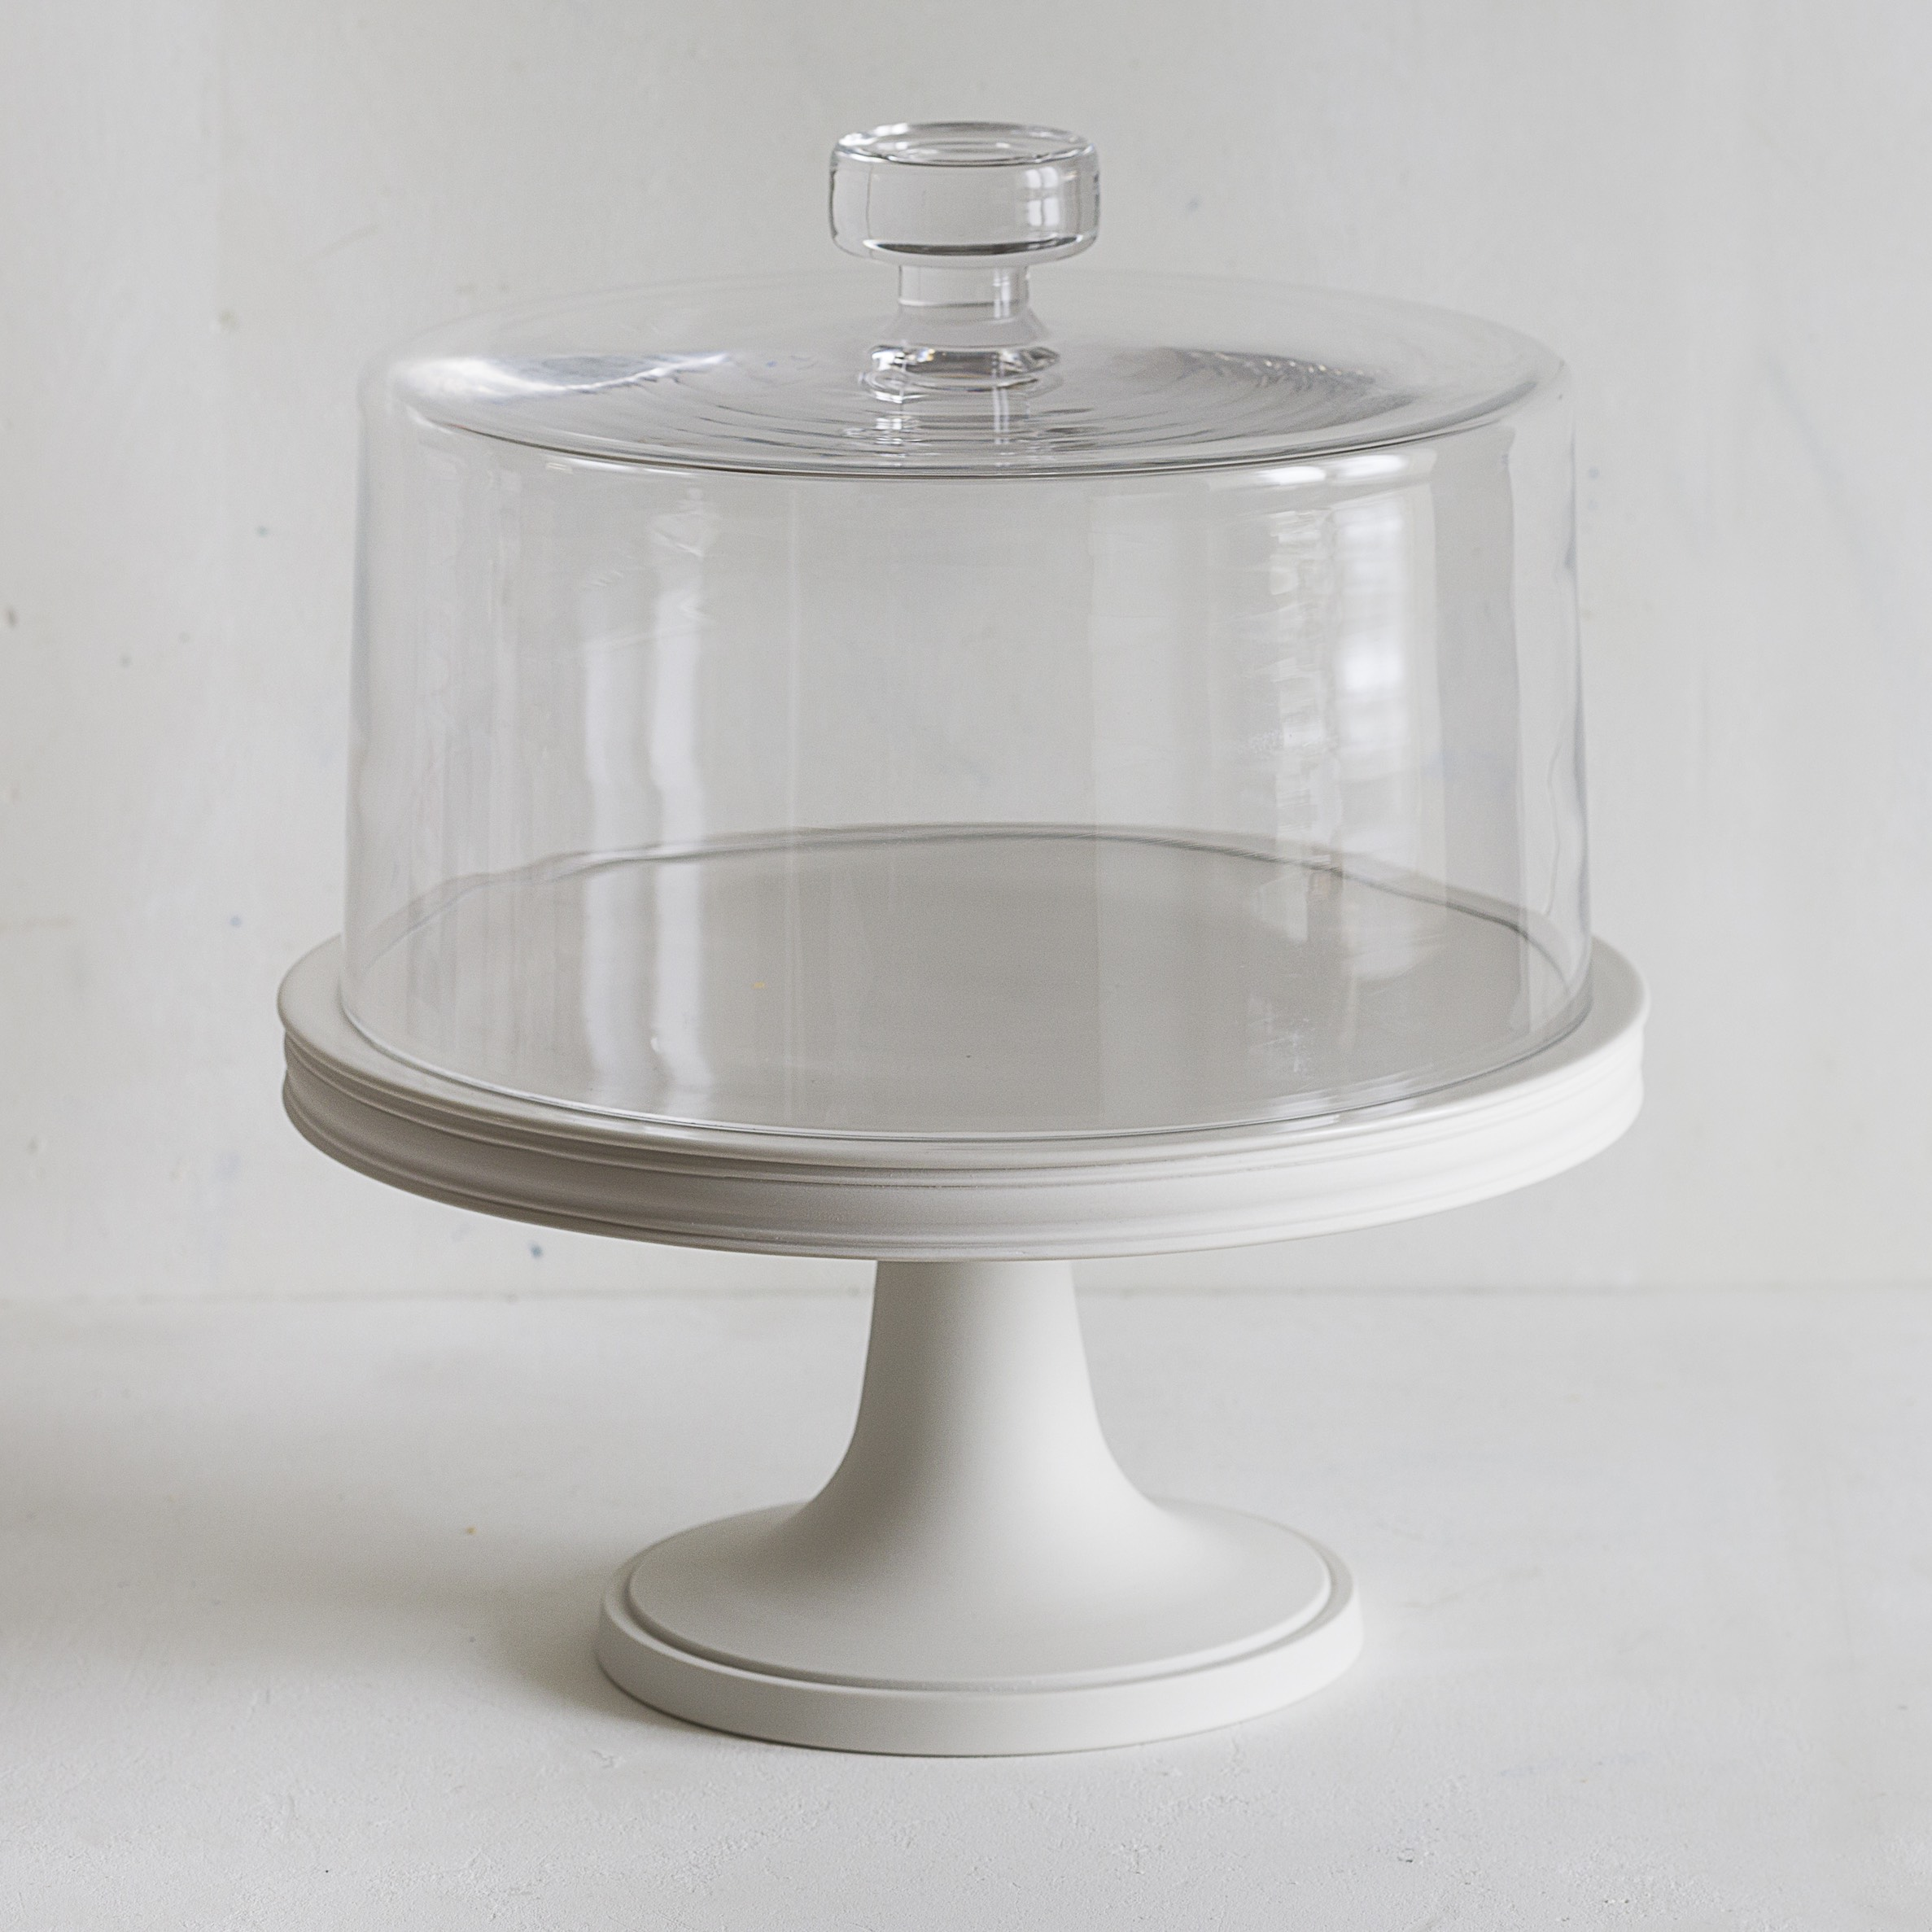 28cm Cake Stand & Glass Dome | Low Res